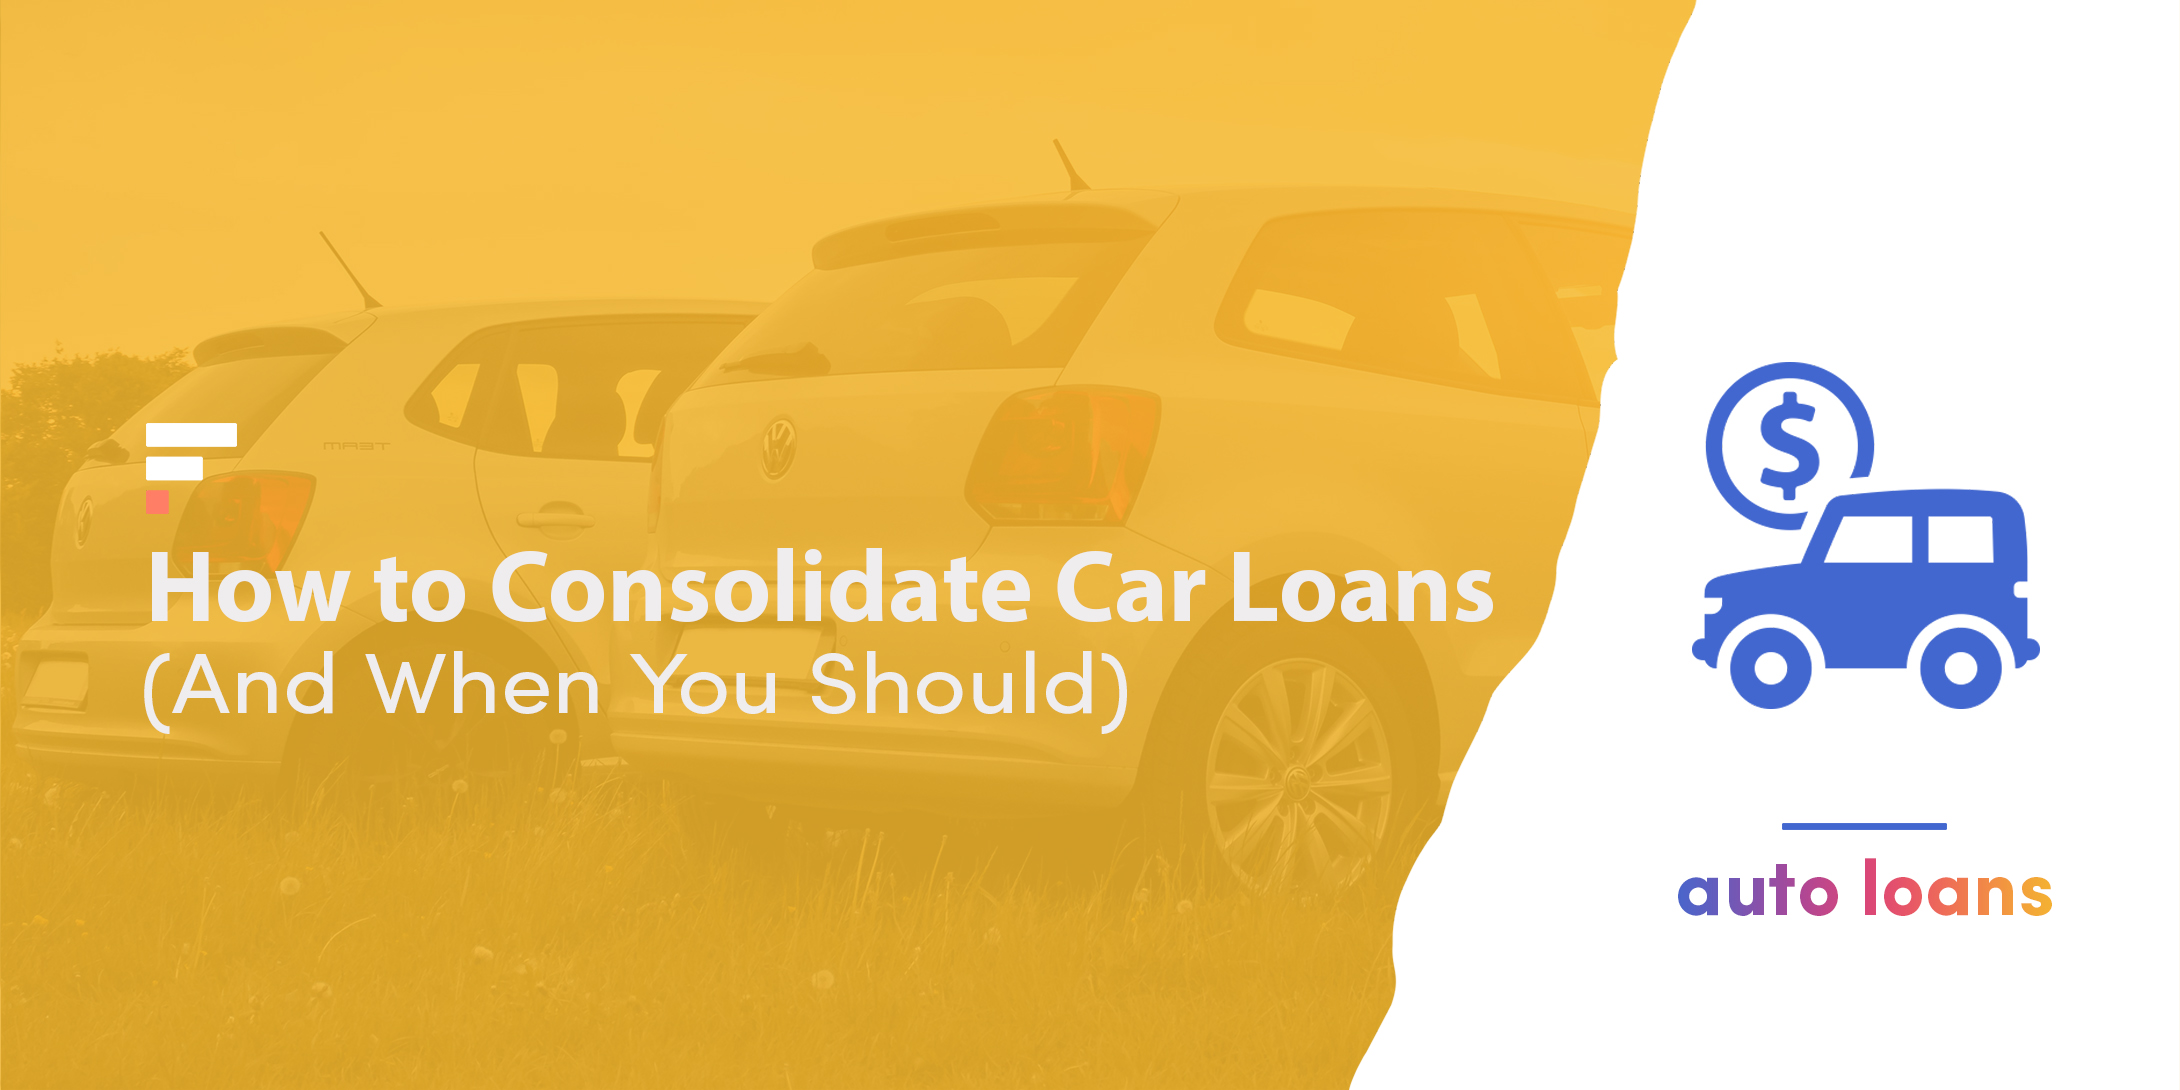 Consolidate car loans